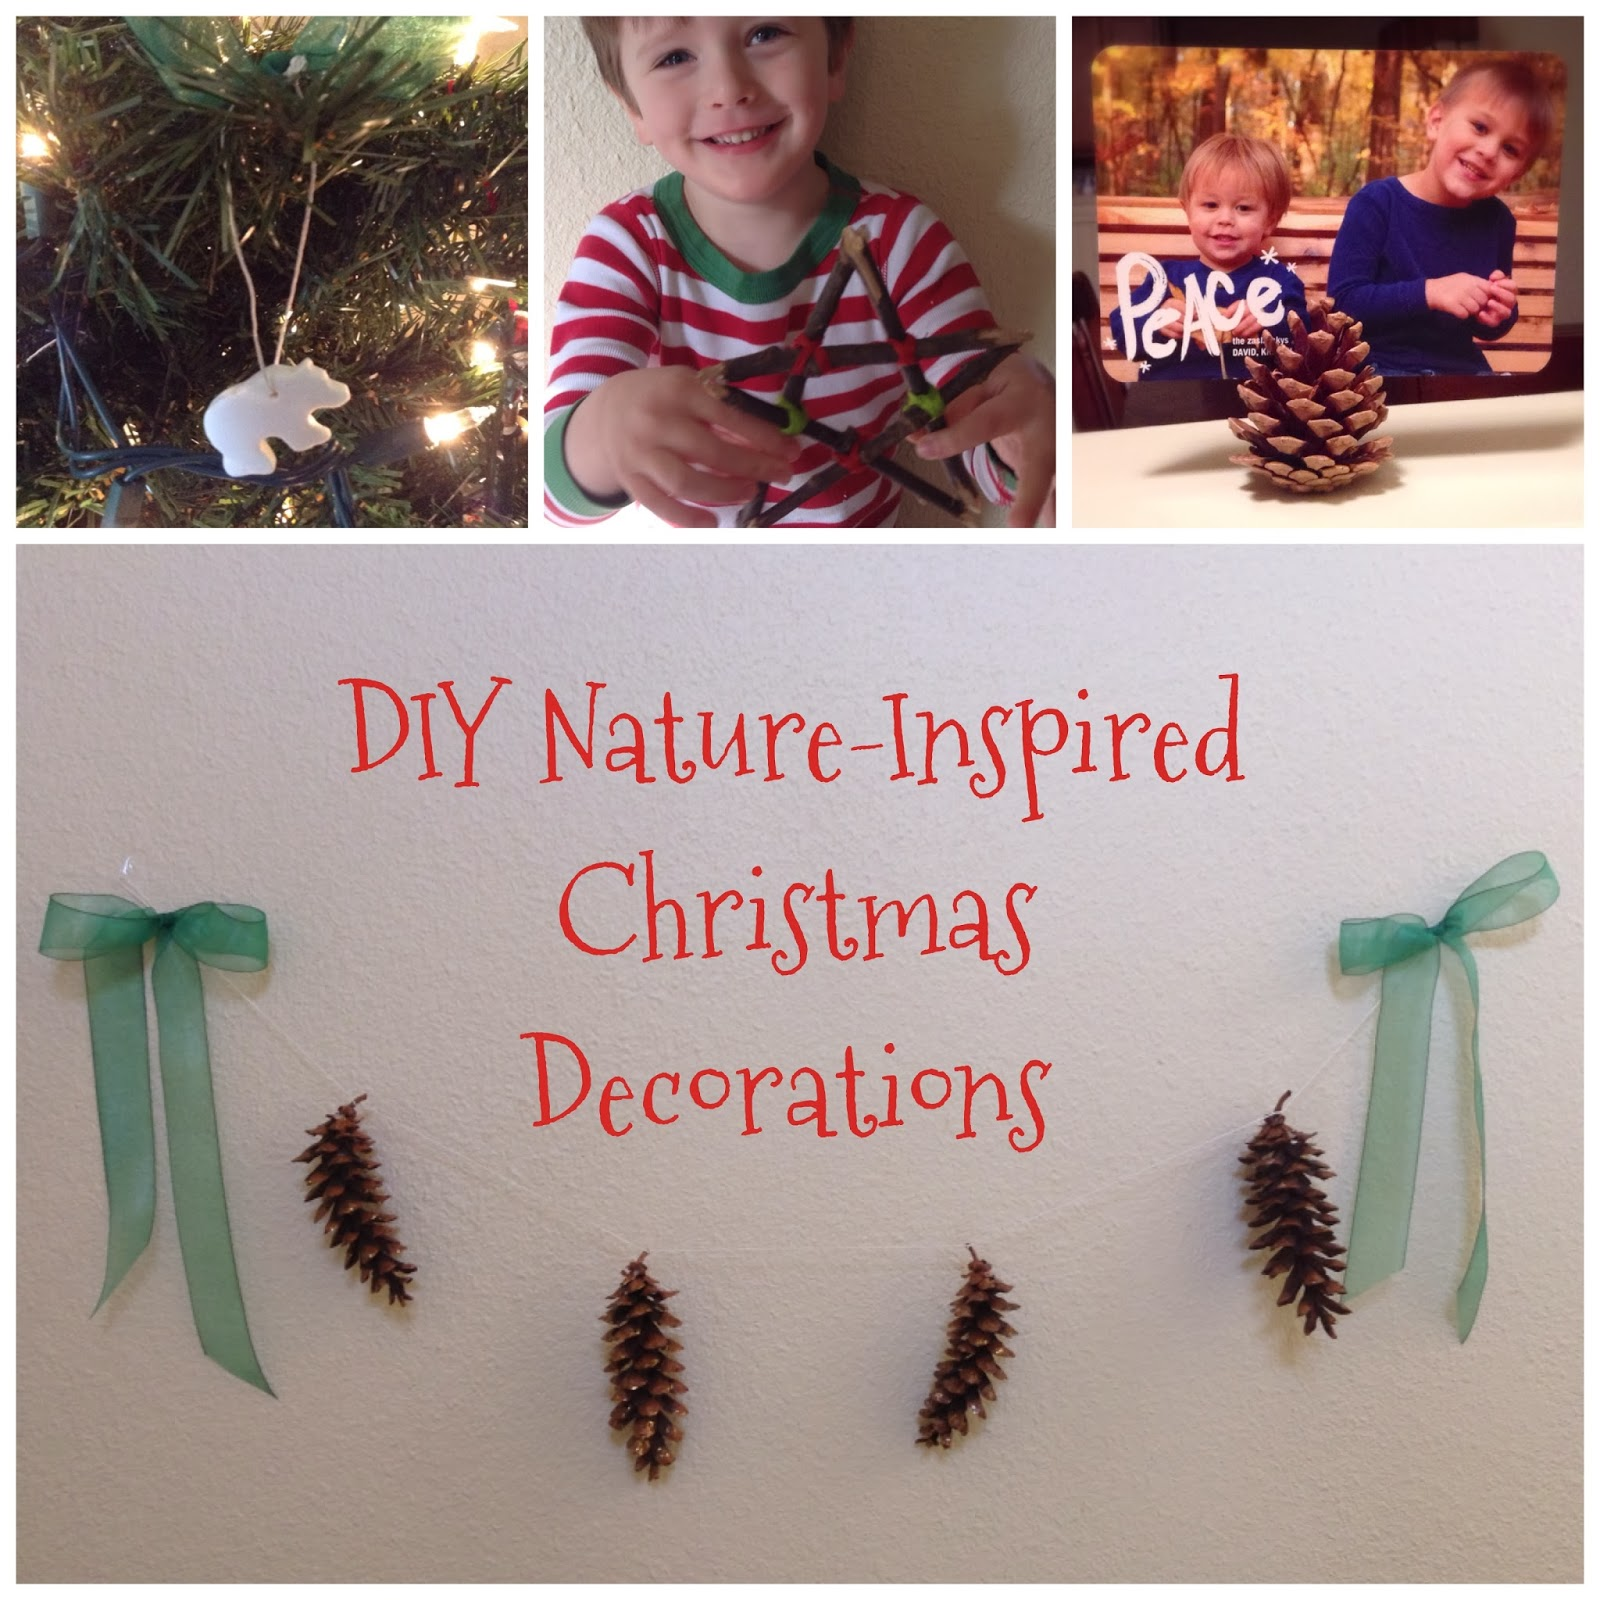 DIY nature-inspired Christmas decorations.